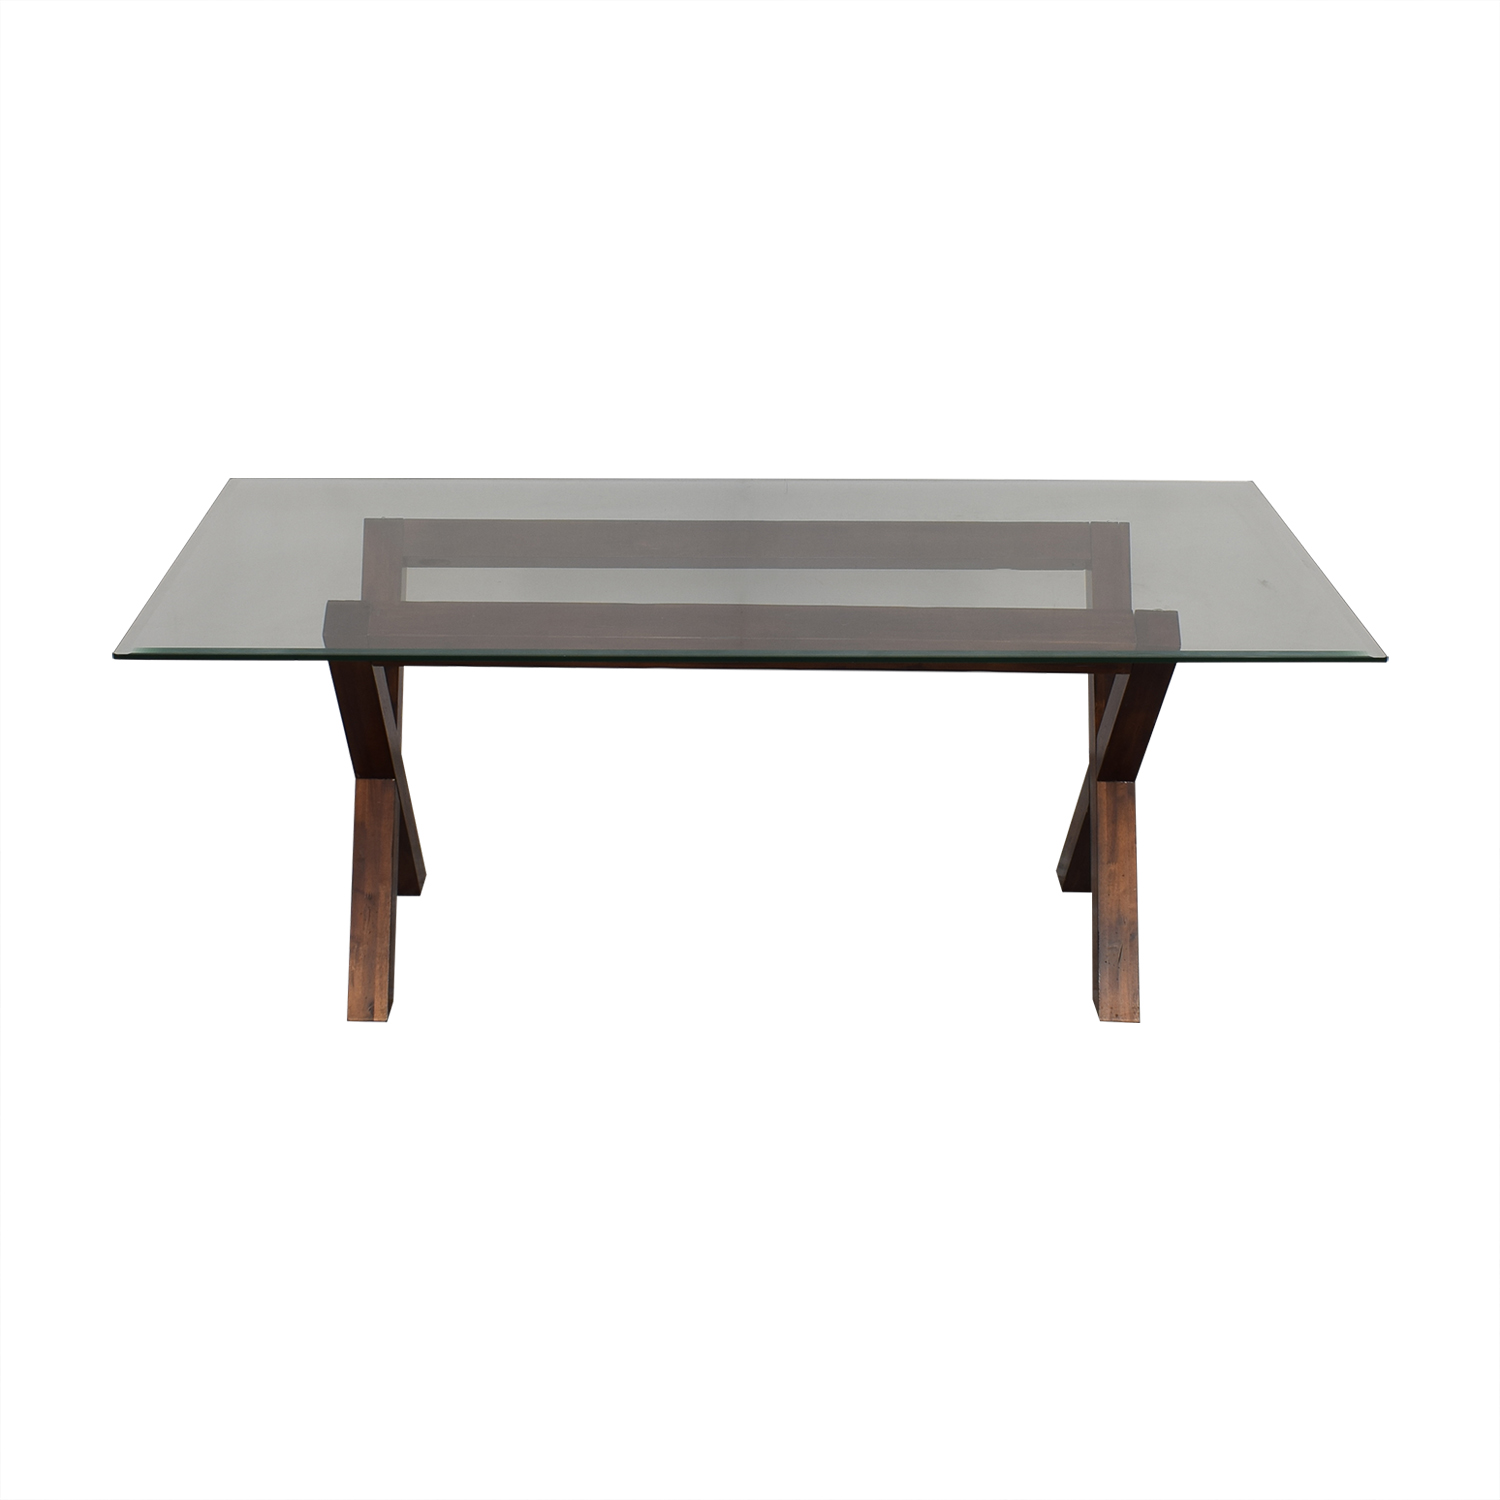 West Elm West Elm Transparent Dining Table nj